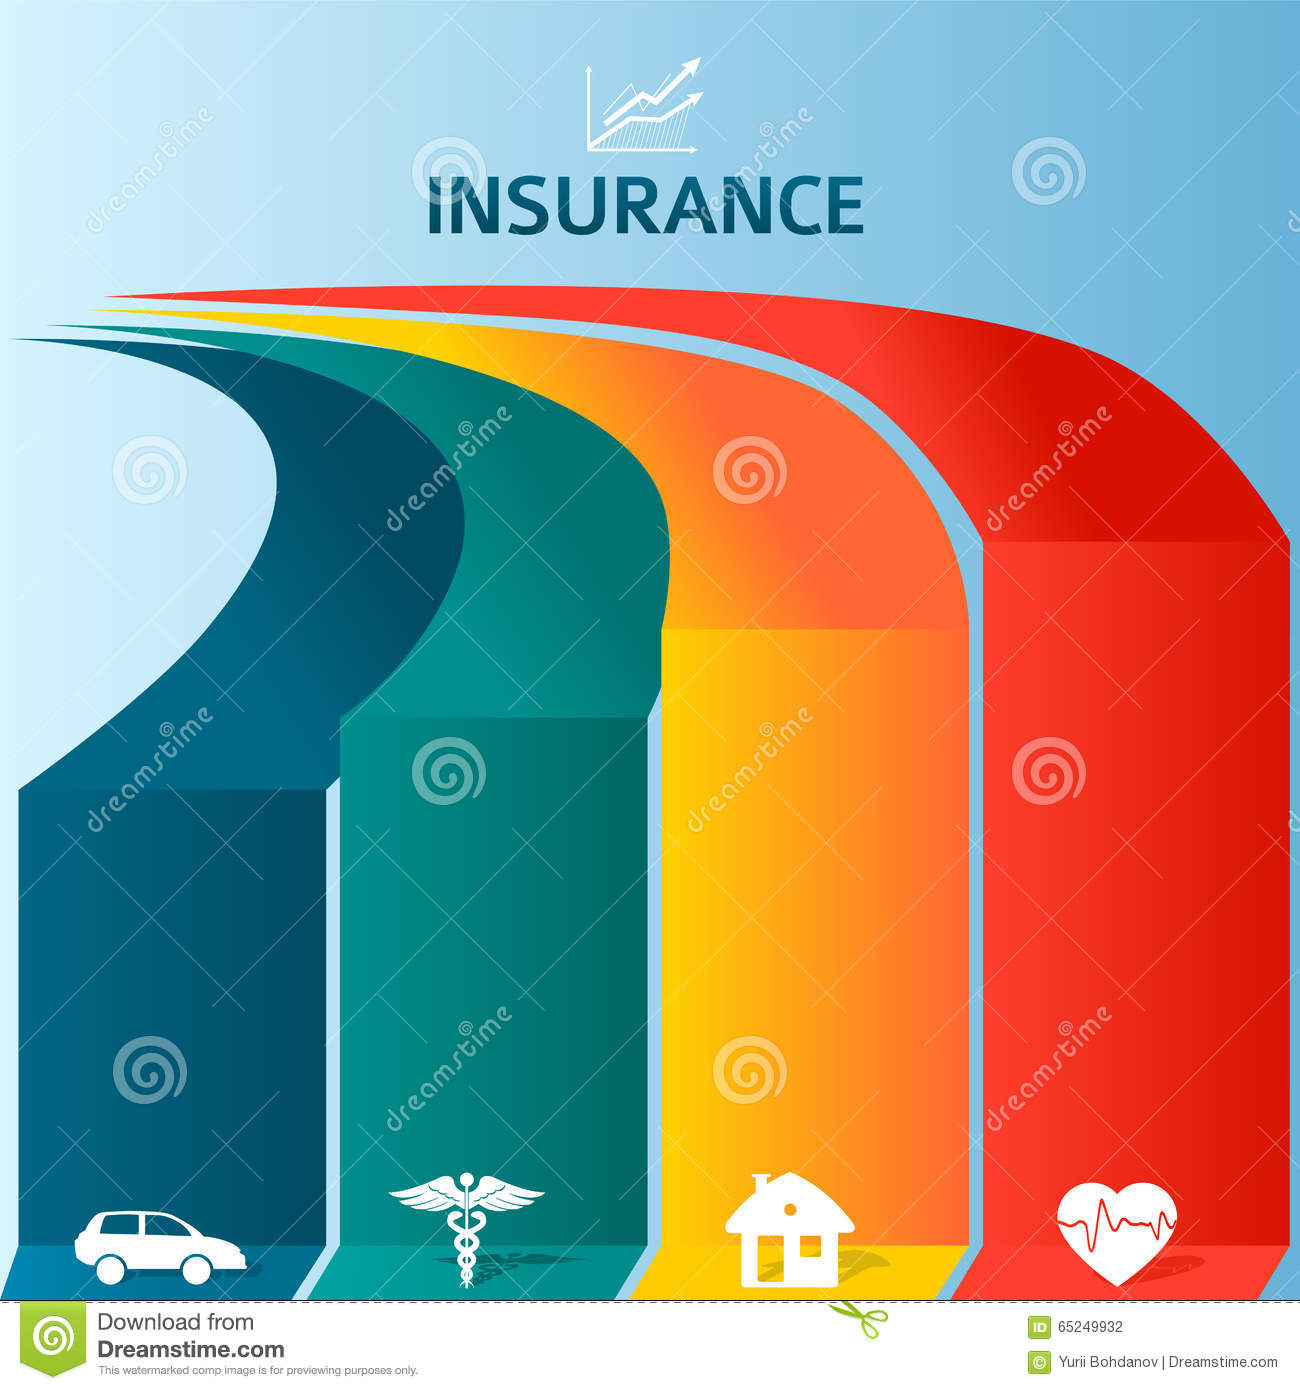 insurance infographic template  Insurance Brochure Template Infographics Colored Stripes Stock ...